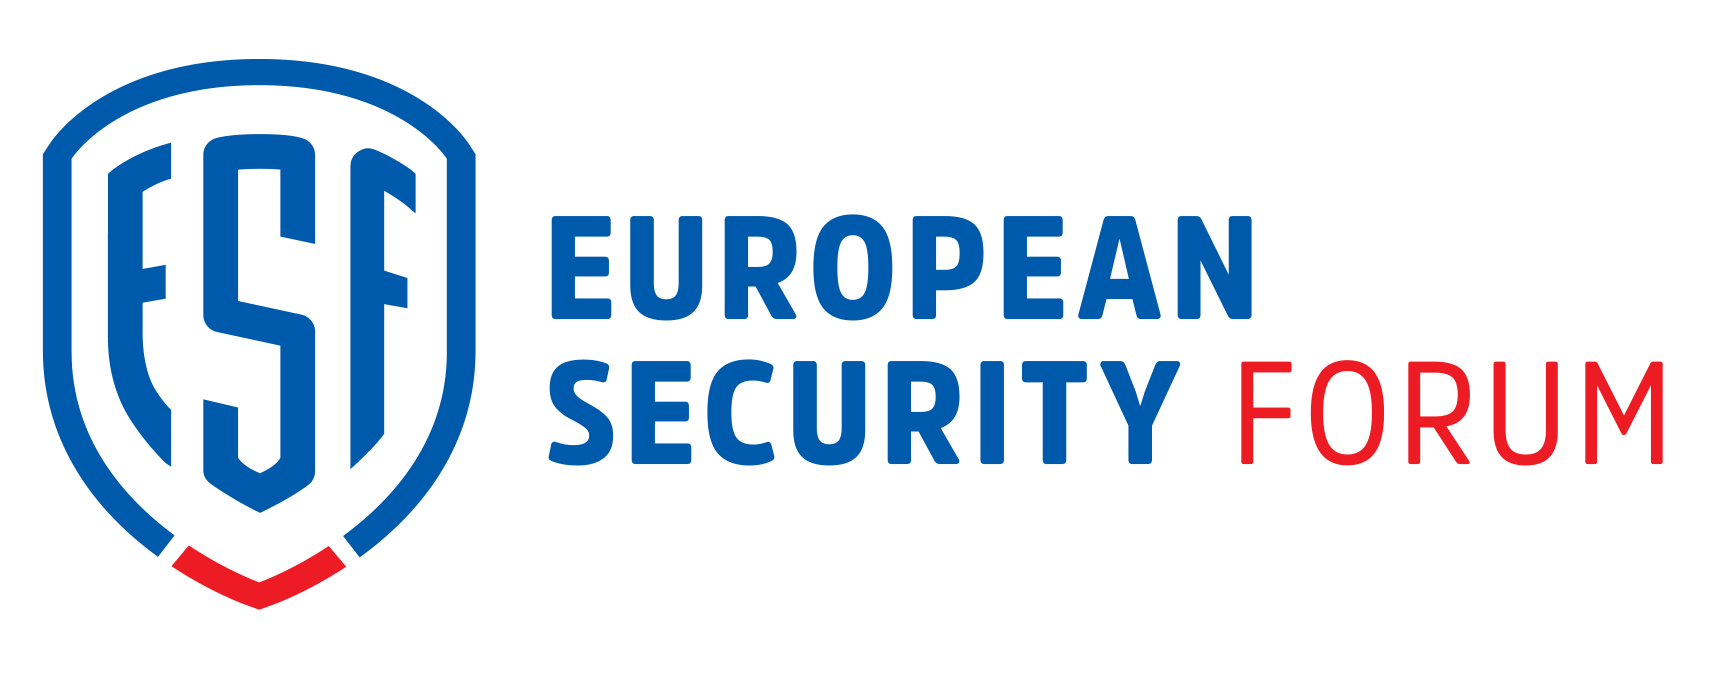 European Security Forum